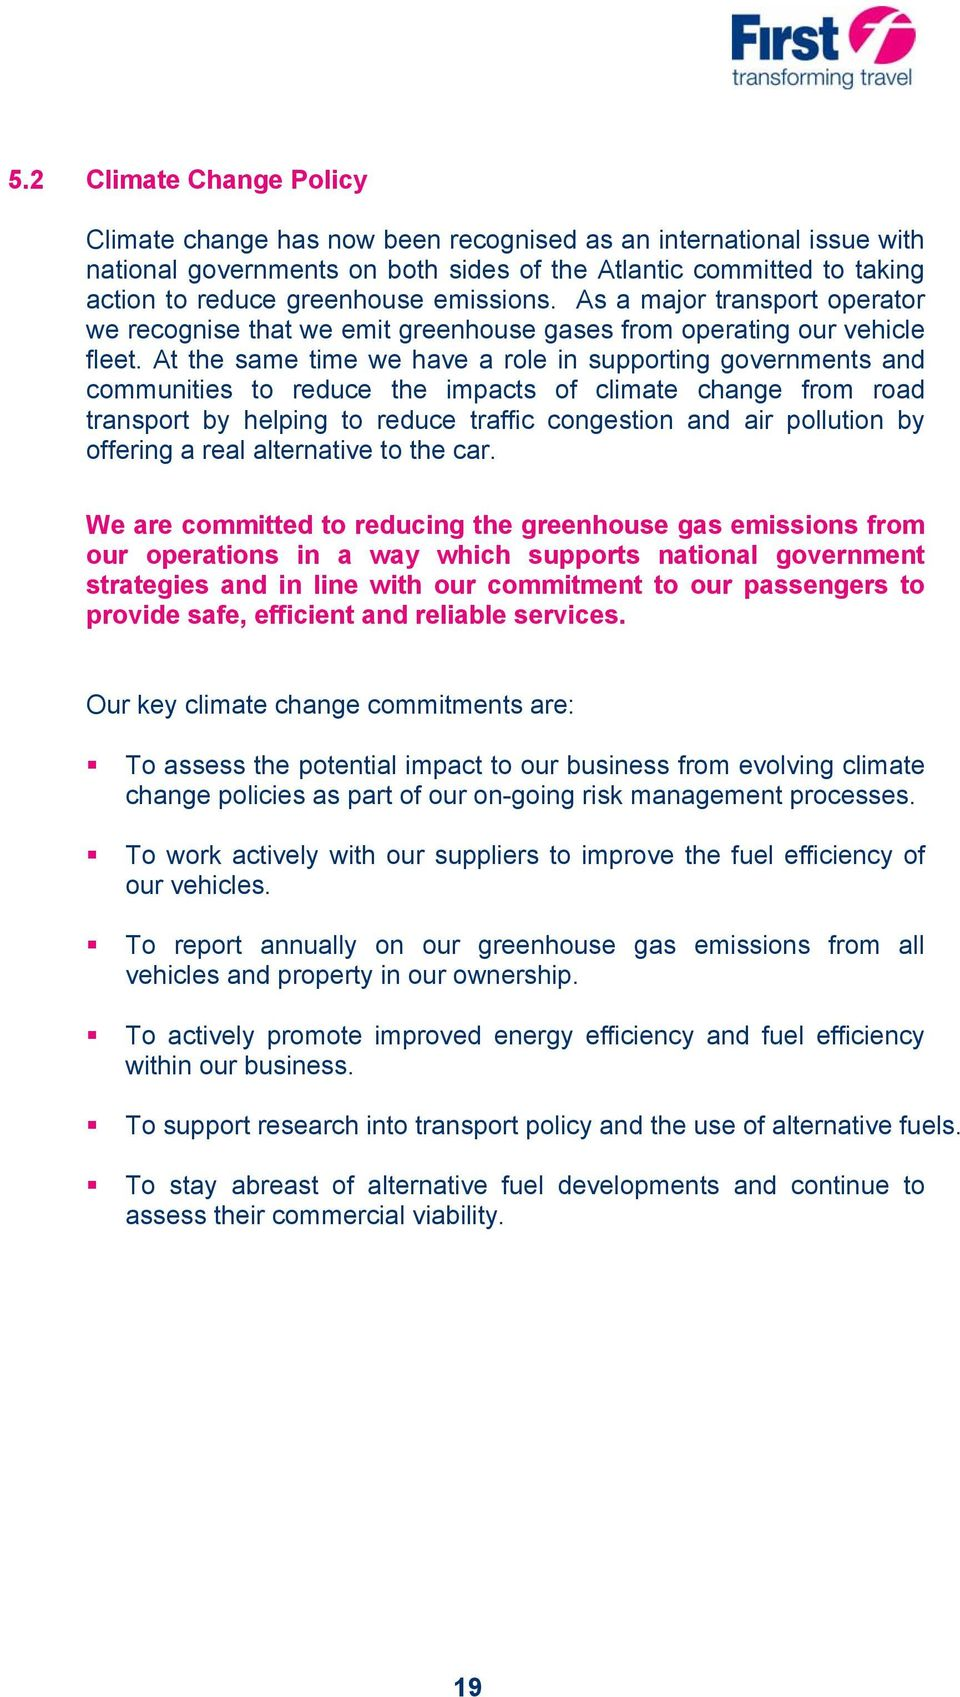 At the same time we have a role in supporting governments and communities to reduce the impacts of climate change from road transport by helping to reduce traffic congestion and air pollution by